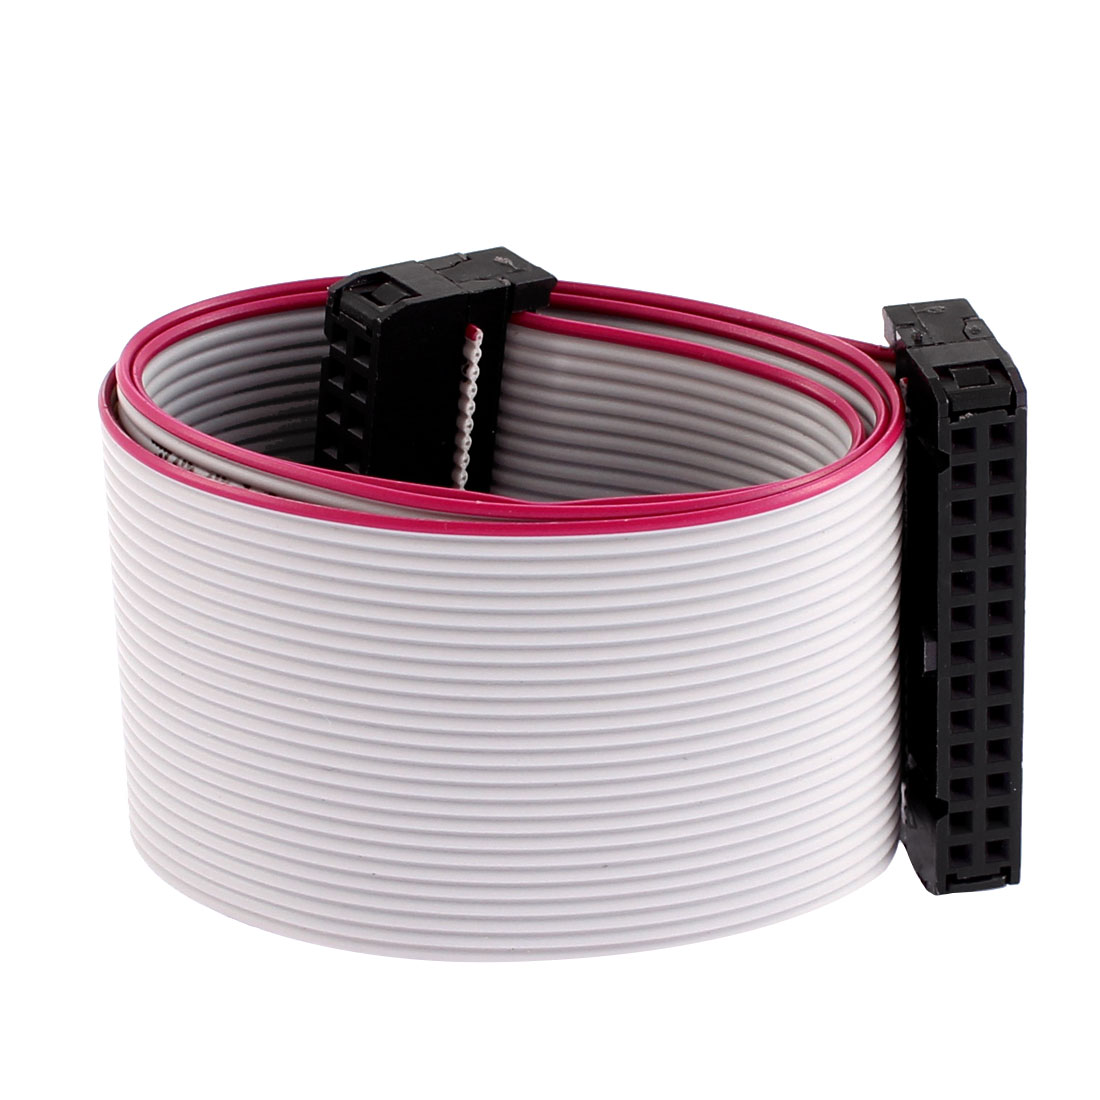 2.54mm Pitch 26 Pin 26 Wire IDC Flat Ribbon Cable 40cm Length